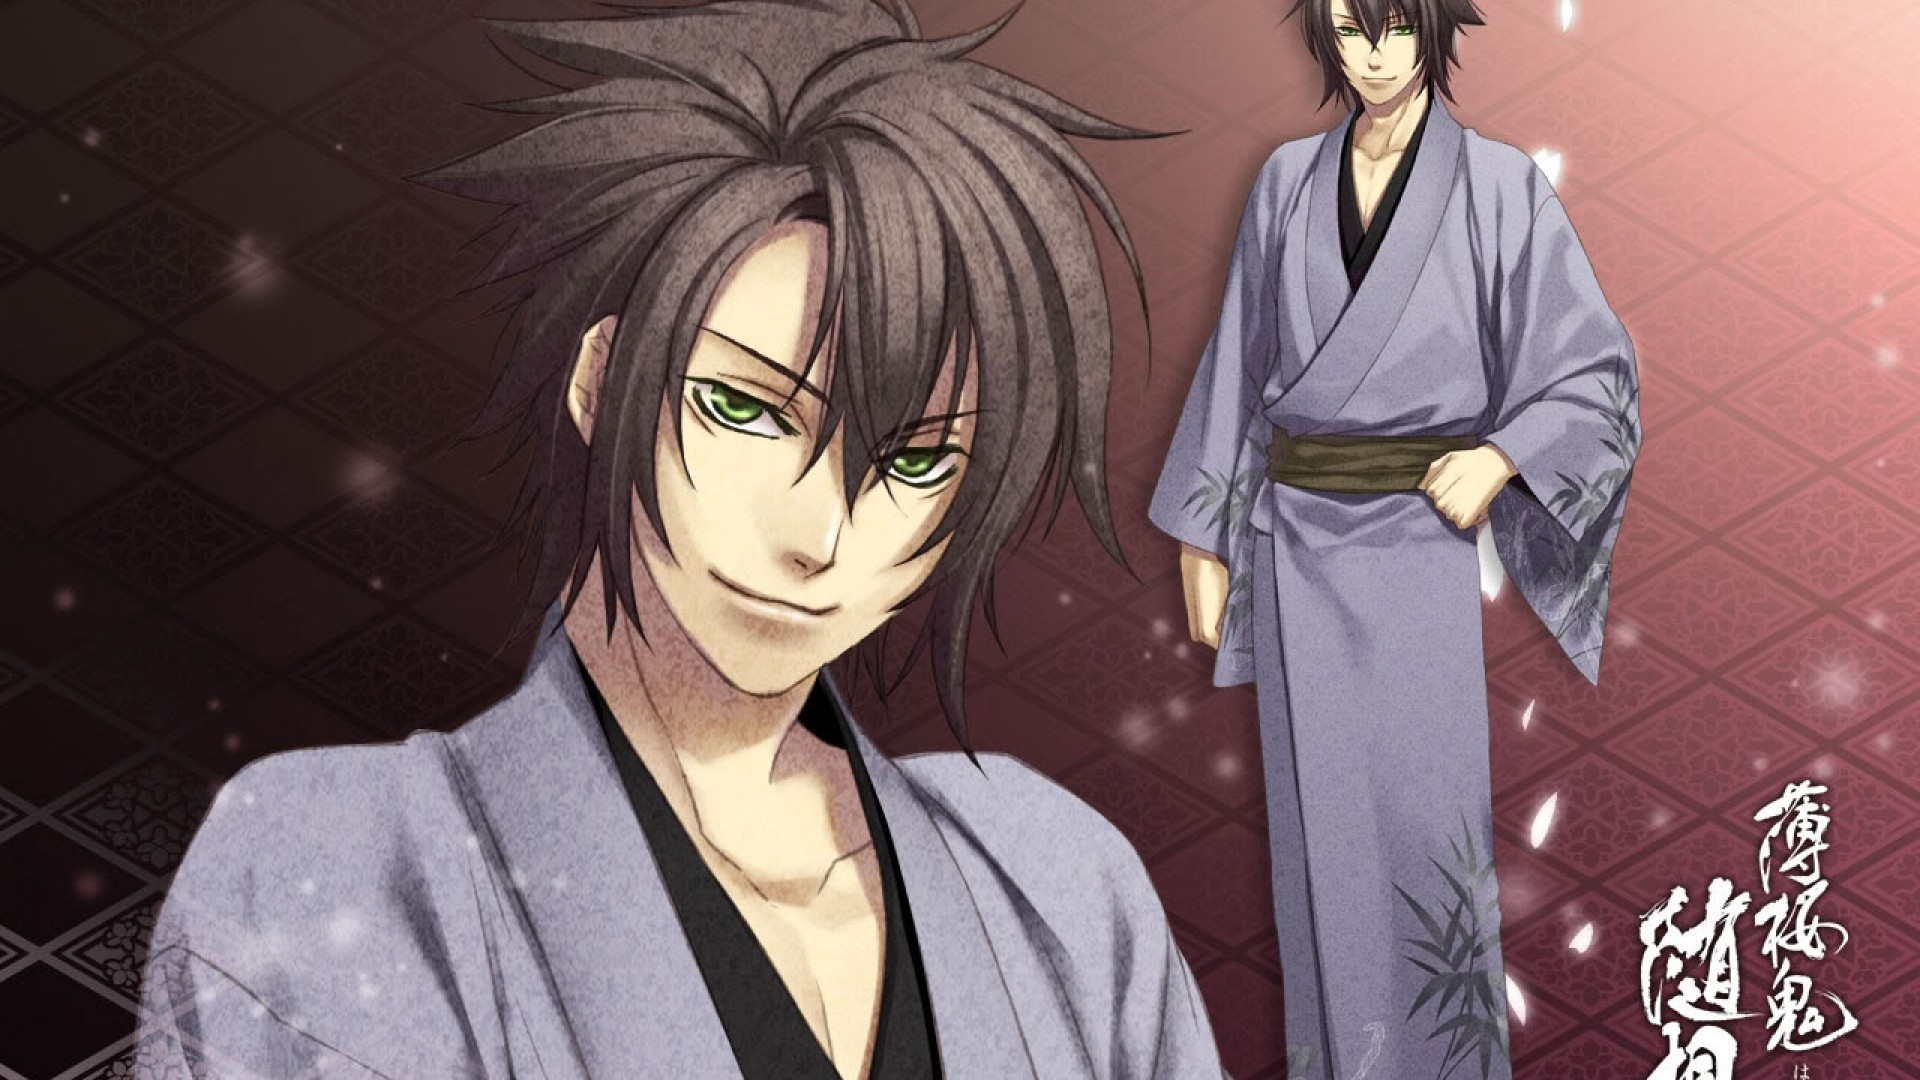 Res: 1920x1080, ... boy news, pictures and videos and learn all about hakuouki shinsengumi  kitan, okita souji, boy from wallpapers4u.org, your wallpaper news source.